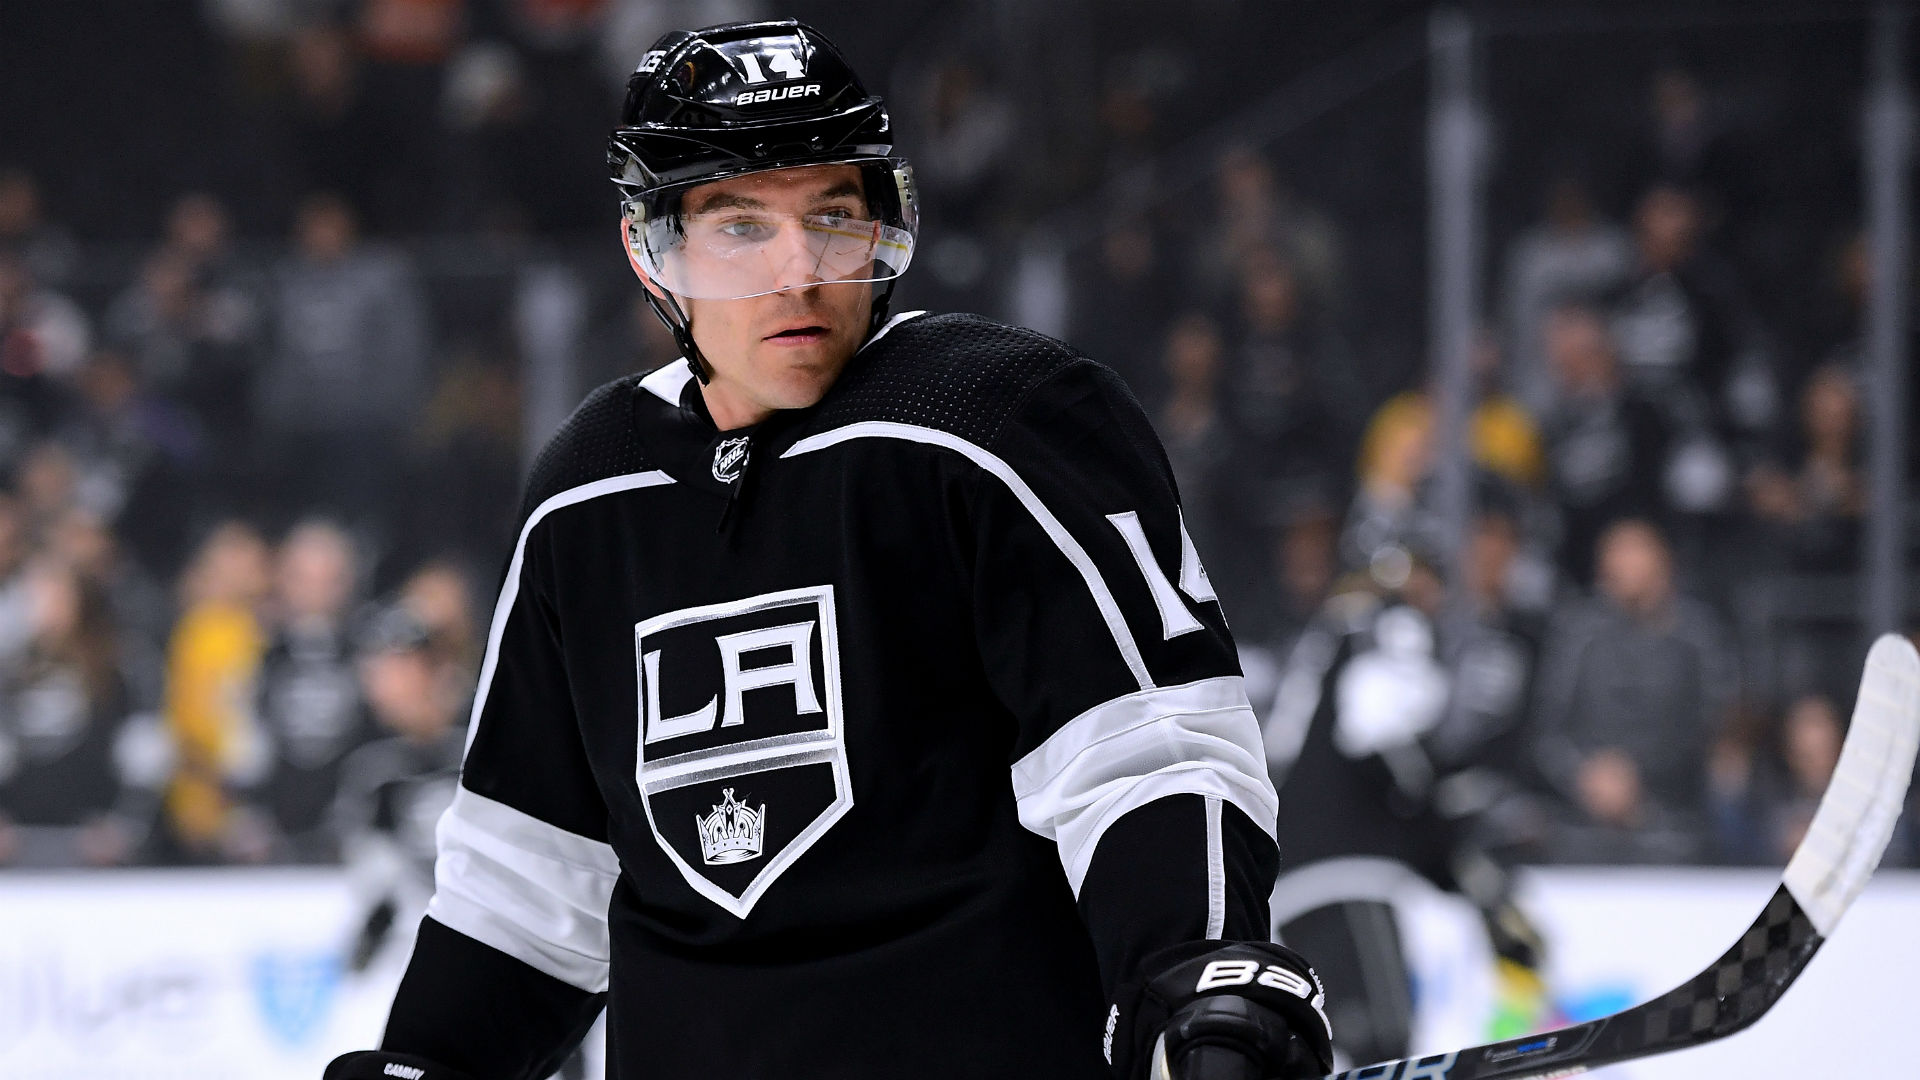 Oilers acquire Cammalleri from Kings for Jokinen